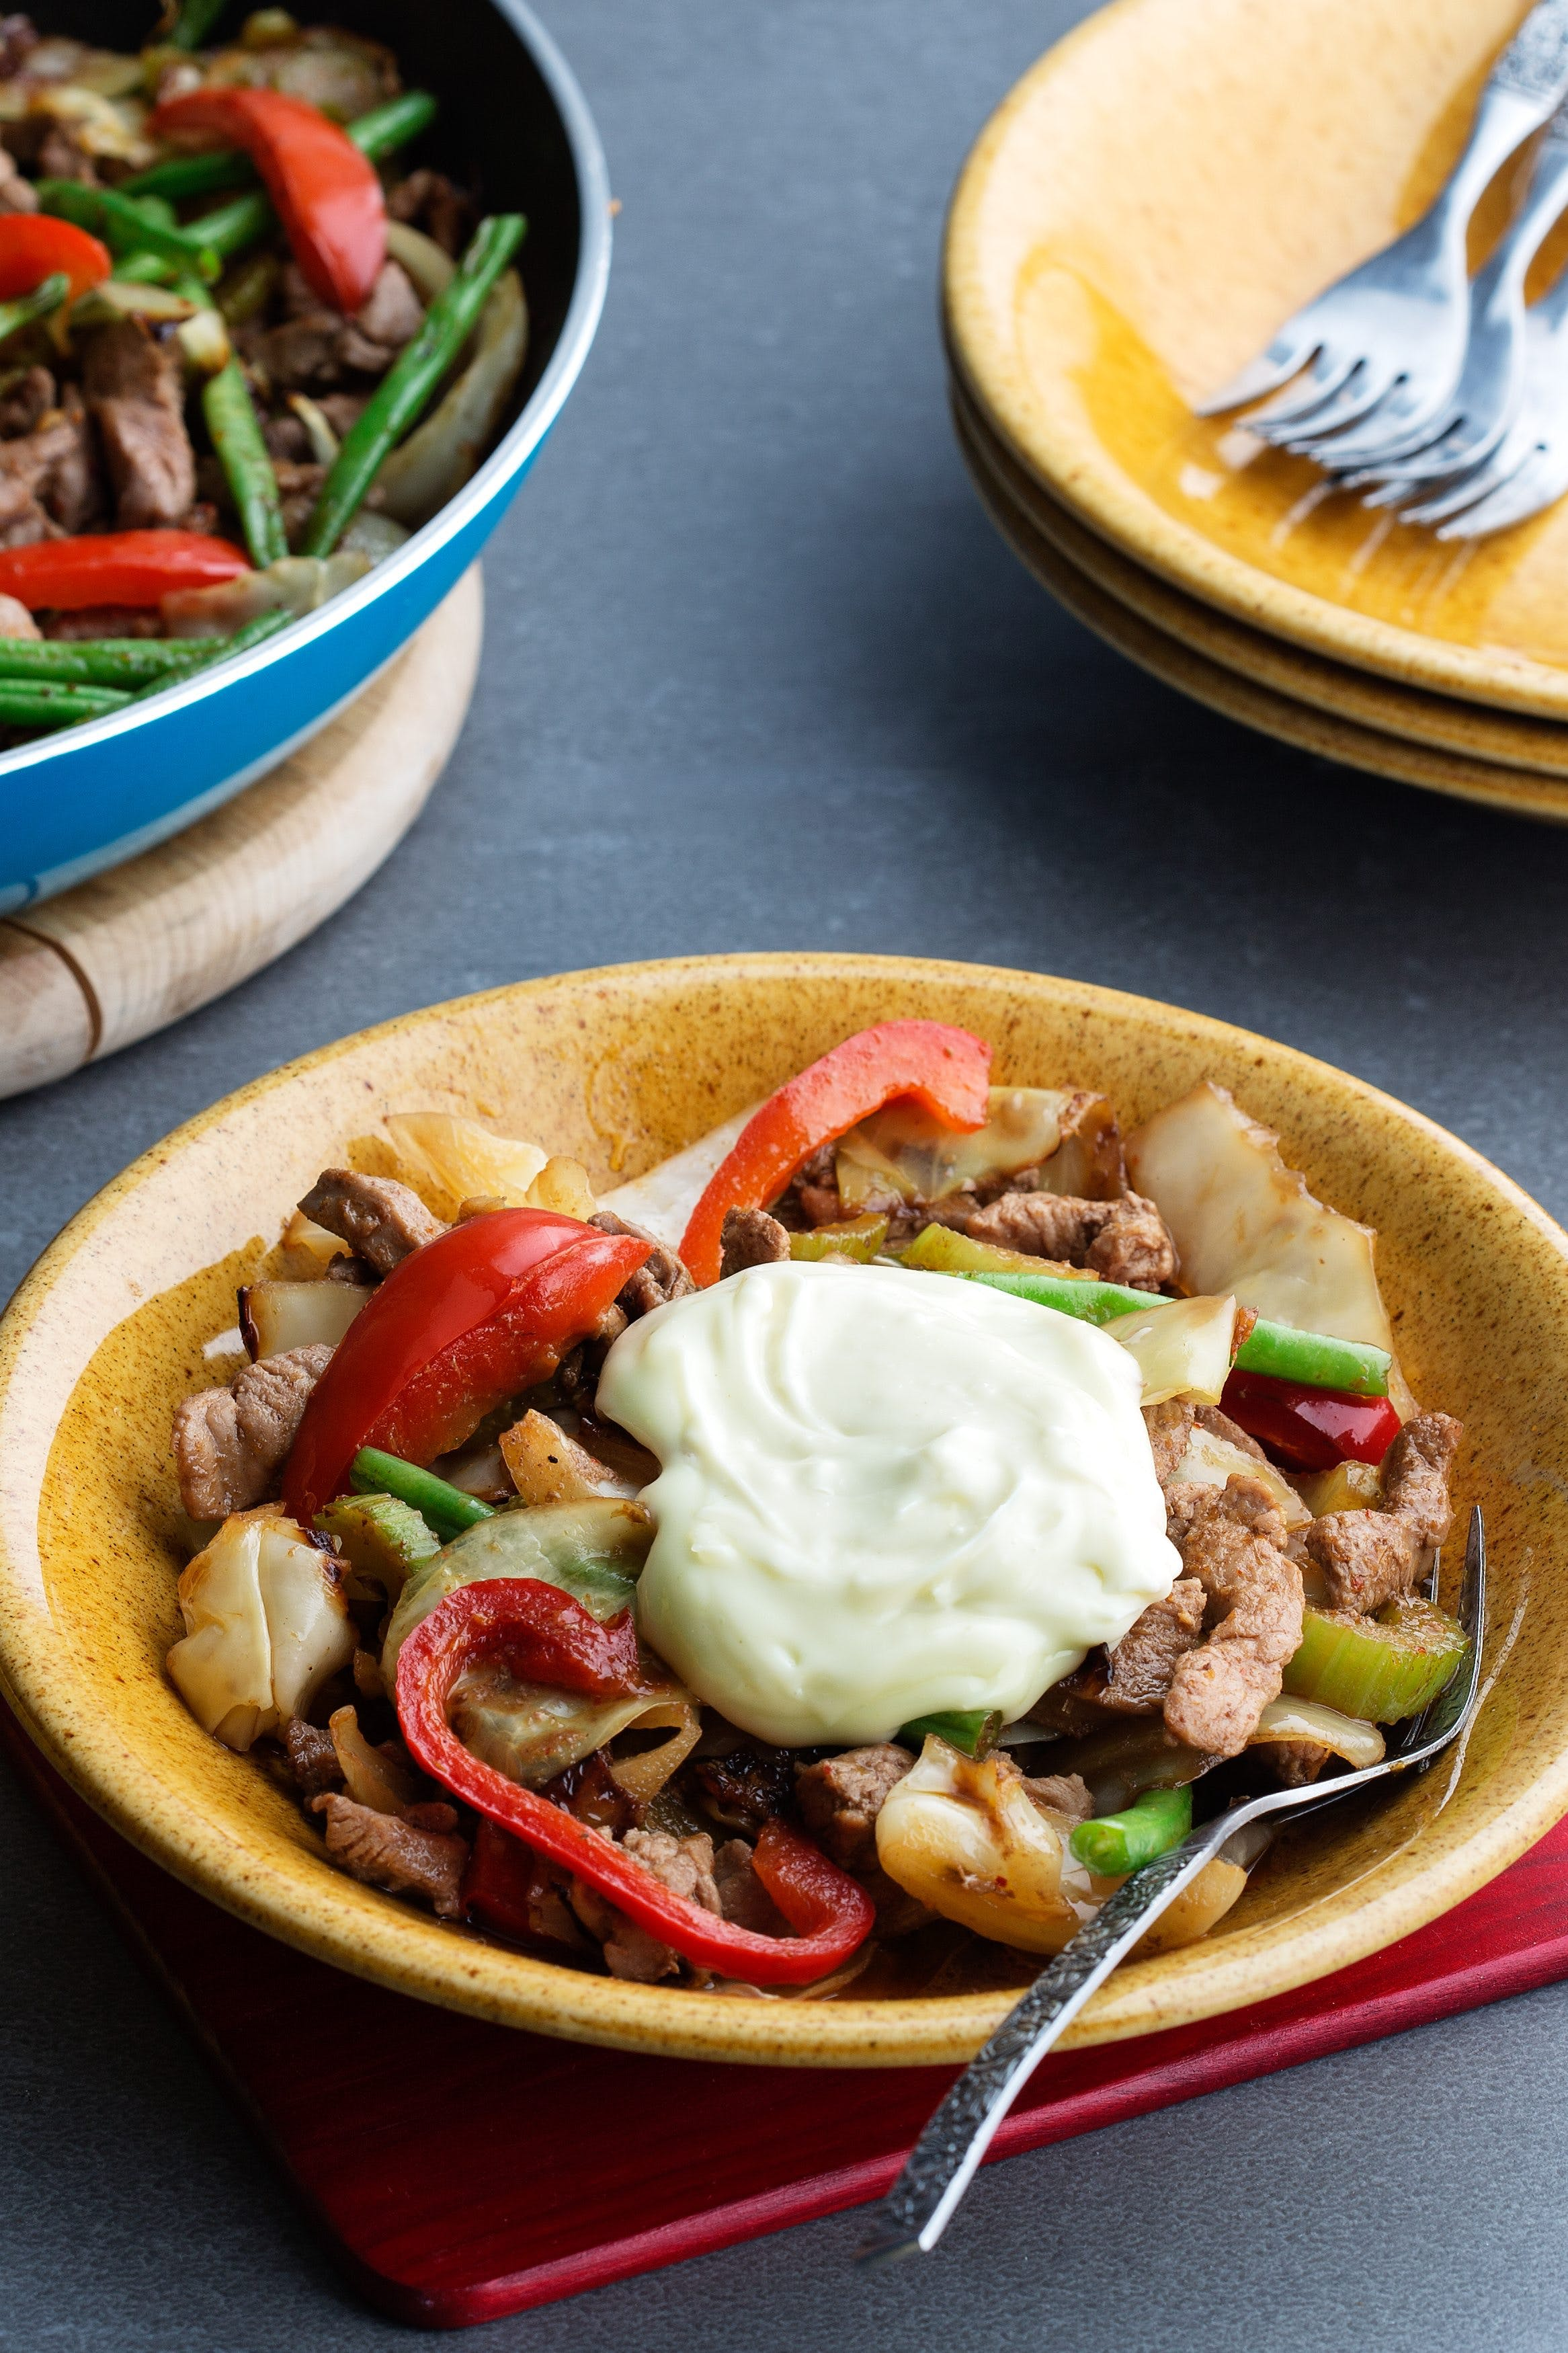 Low-carb turkey stir-fry with wasabi mayo